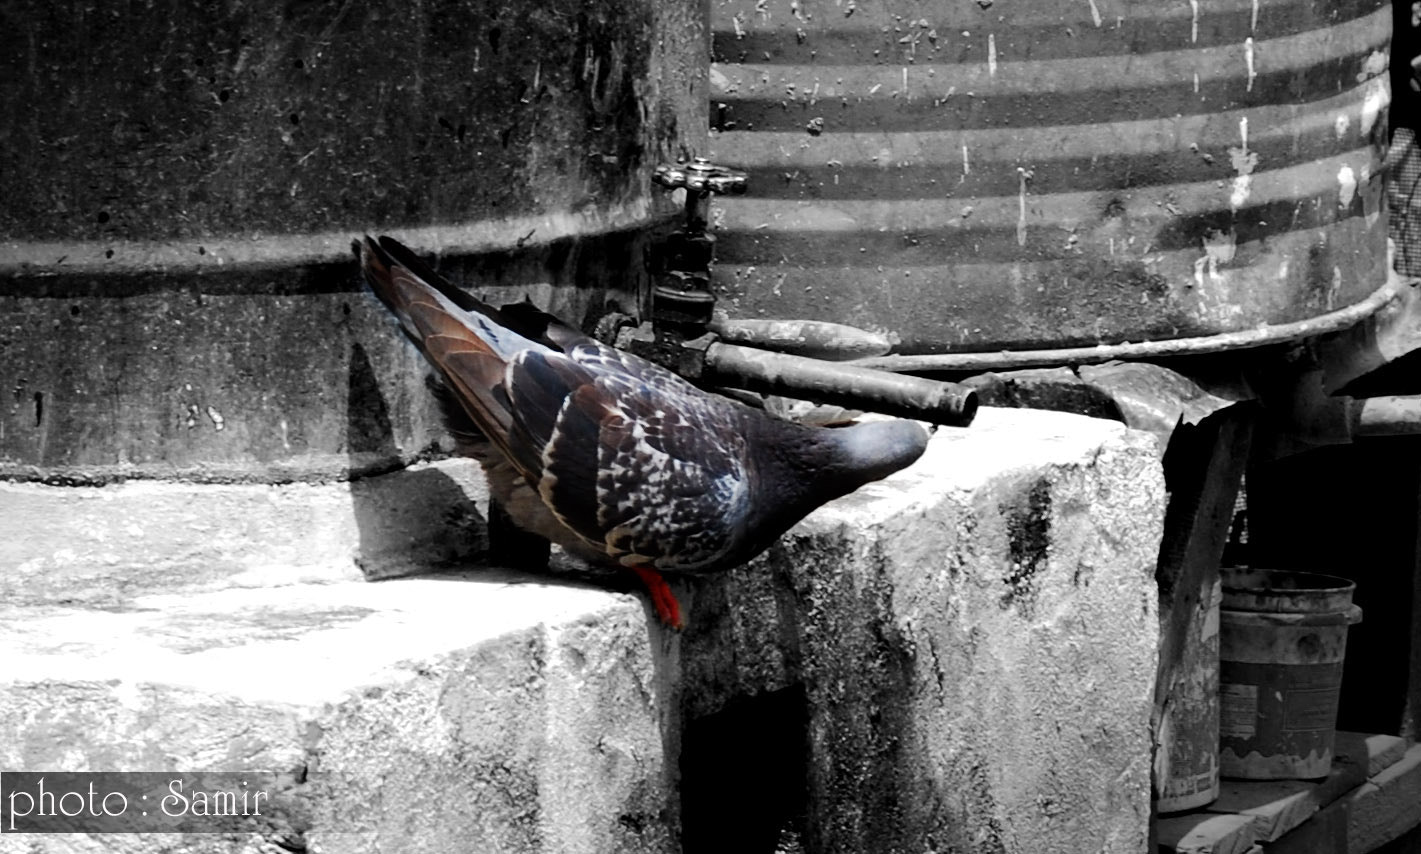 Photograph thirsty Pigeon by Samir Udash on 500px